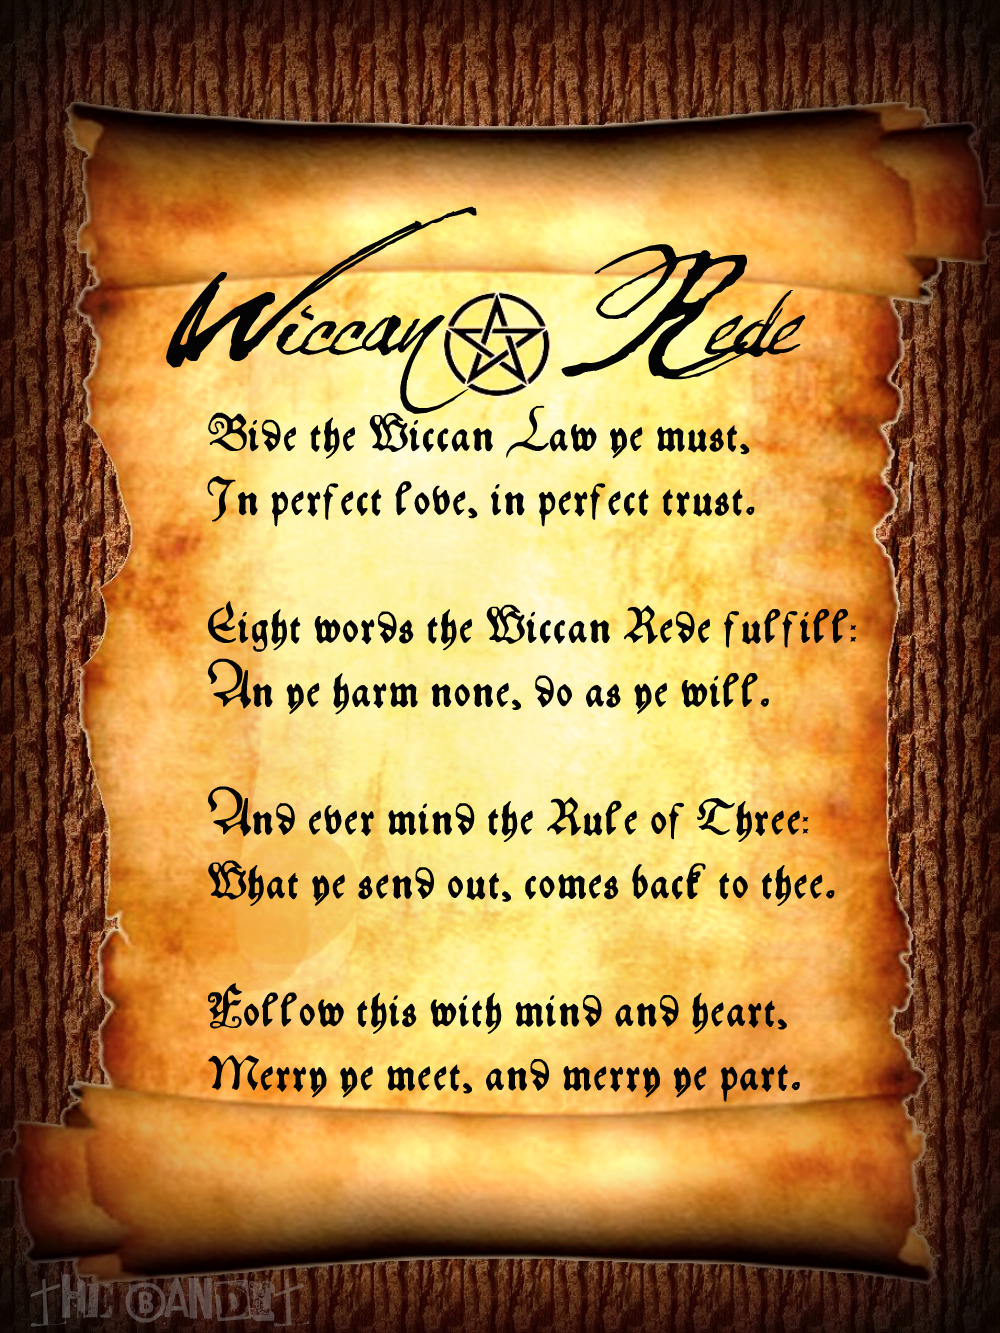 Wiccan Rede By The Bandit Leigh On Deviantart